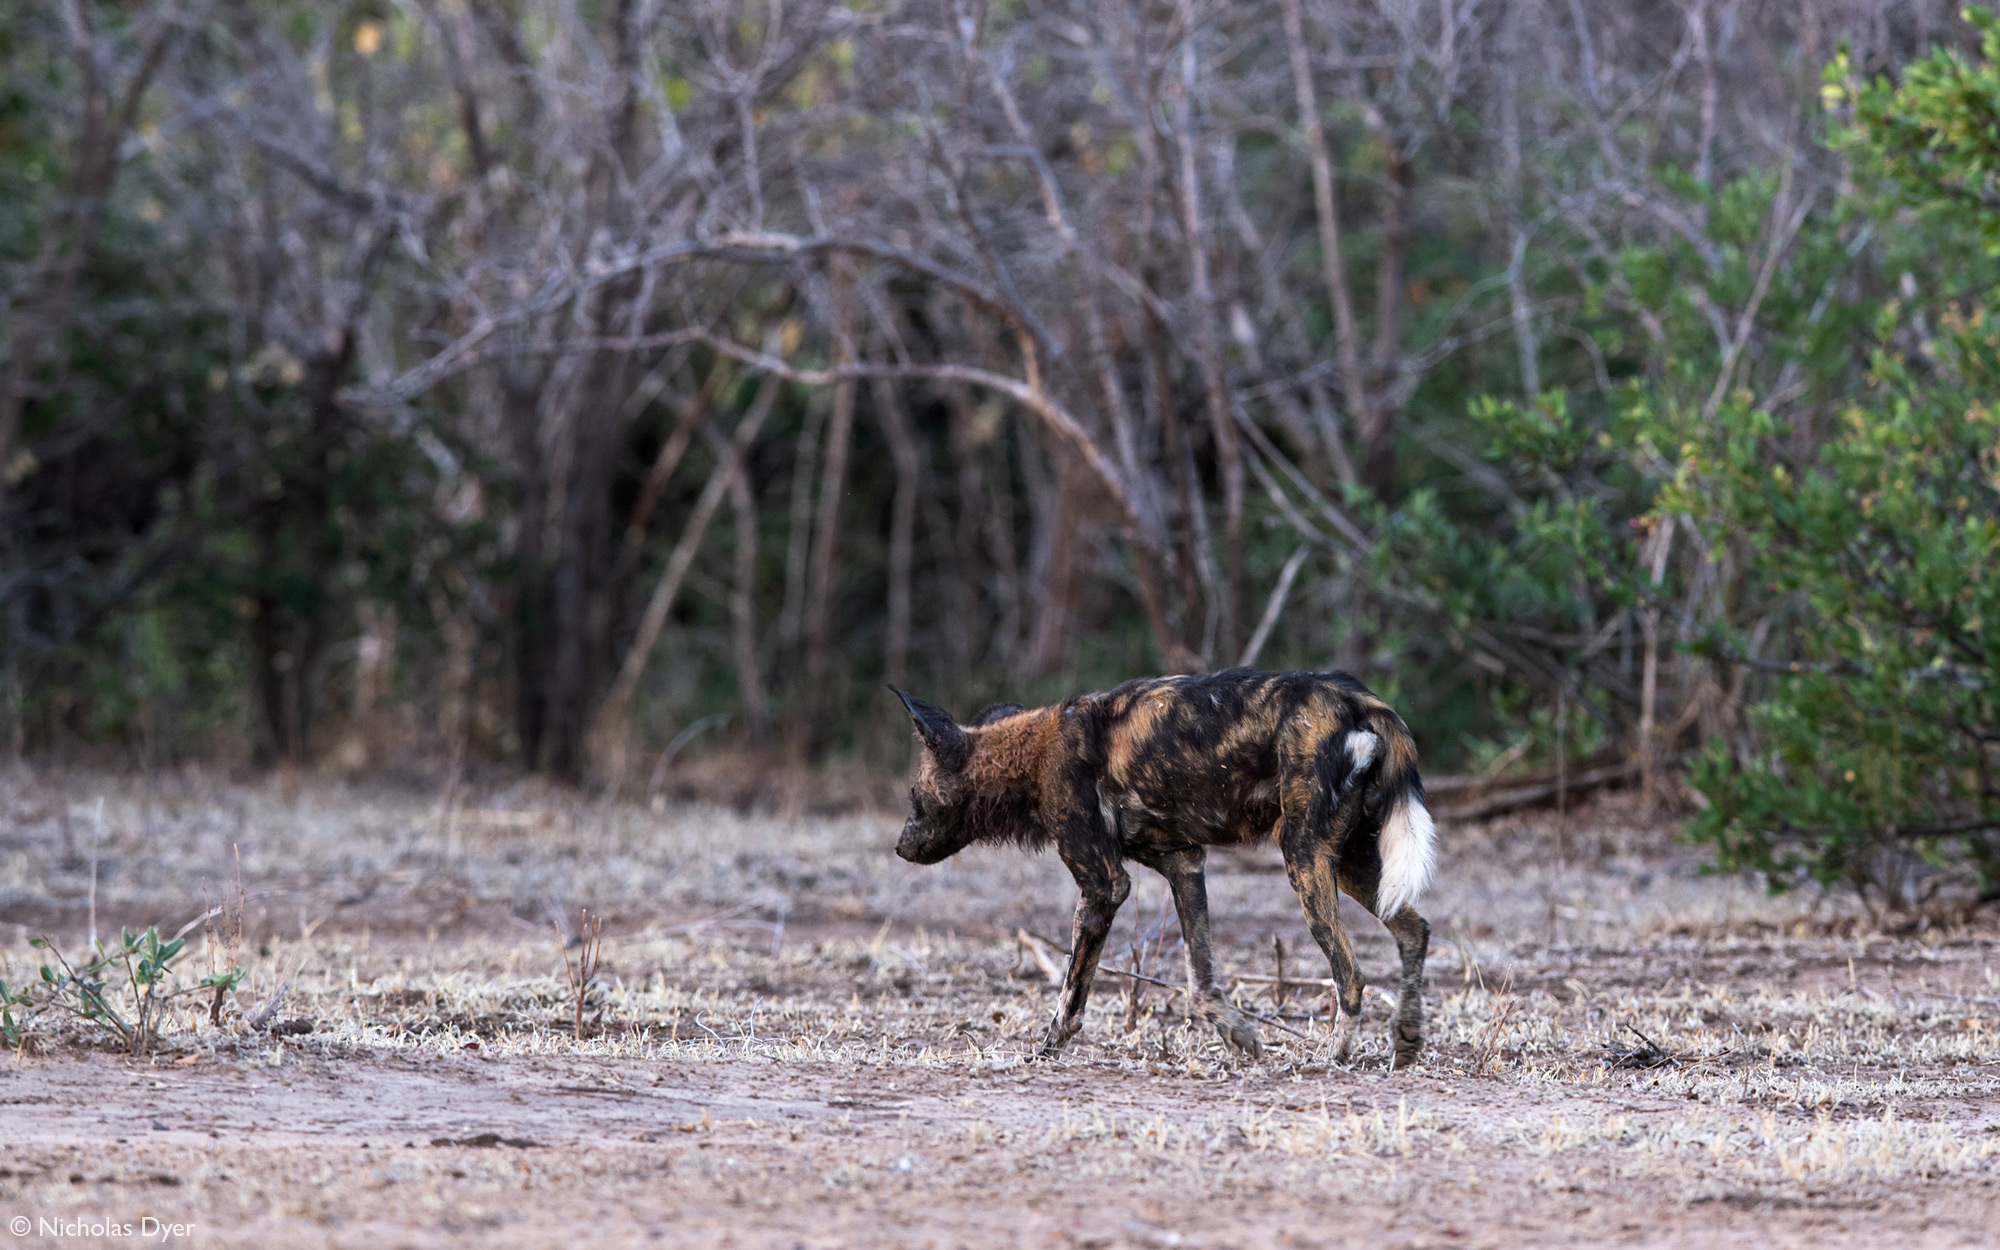 Old painted wolf, African wild dog, walking in Mana Pools National Park, Zimbabwe